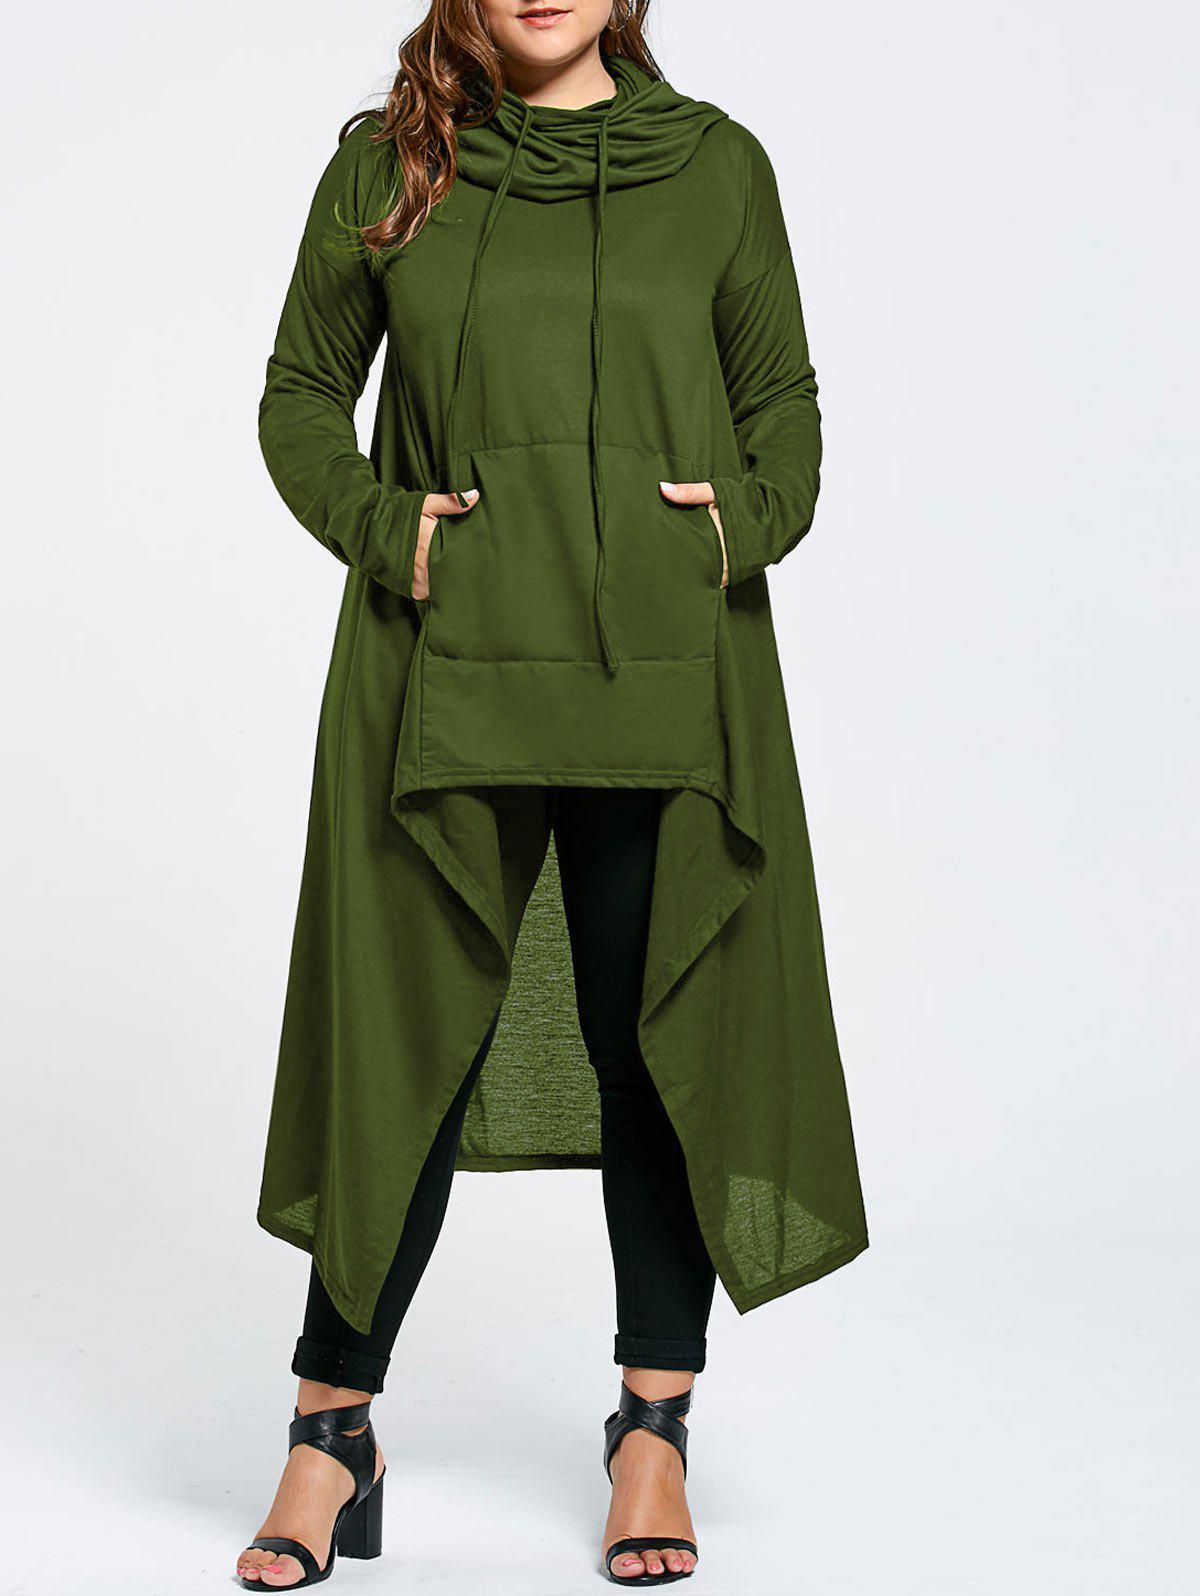 Plus Size Maxi Asymmetric Funnel Collar HoodieWOMEN<br><br>Size: 5XL; Color: ARMY GREEN; Material: Cotton Blend,Polyester; Shirt Length: X-Long; Sleeve Length: Full; Style: Fashion; Pattern Style: Solid; Season: Fall,Winter; Weight: 0.5800kg; Package Contents: 1 x Hoodie;